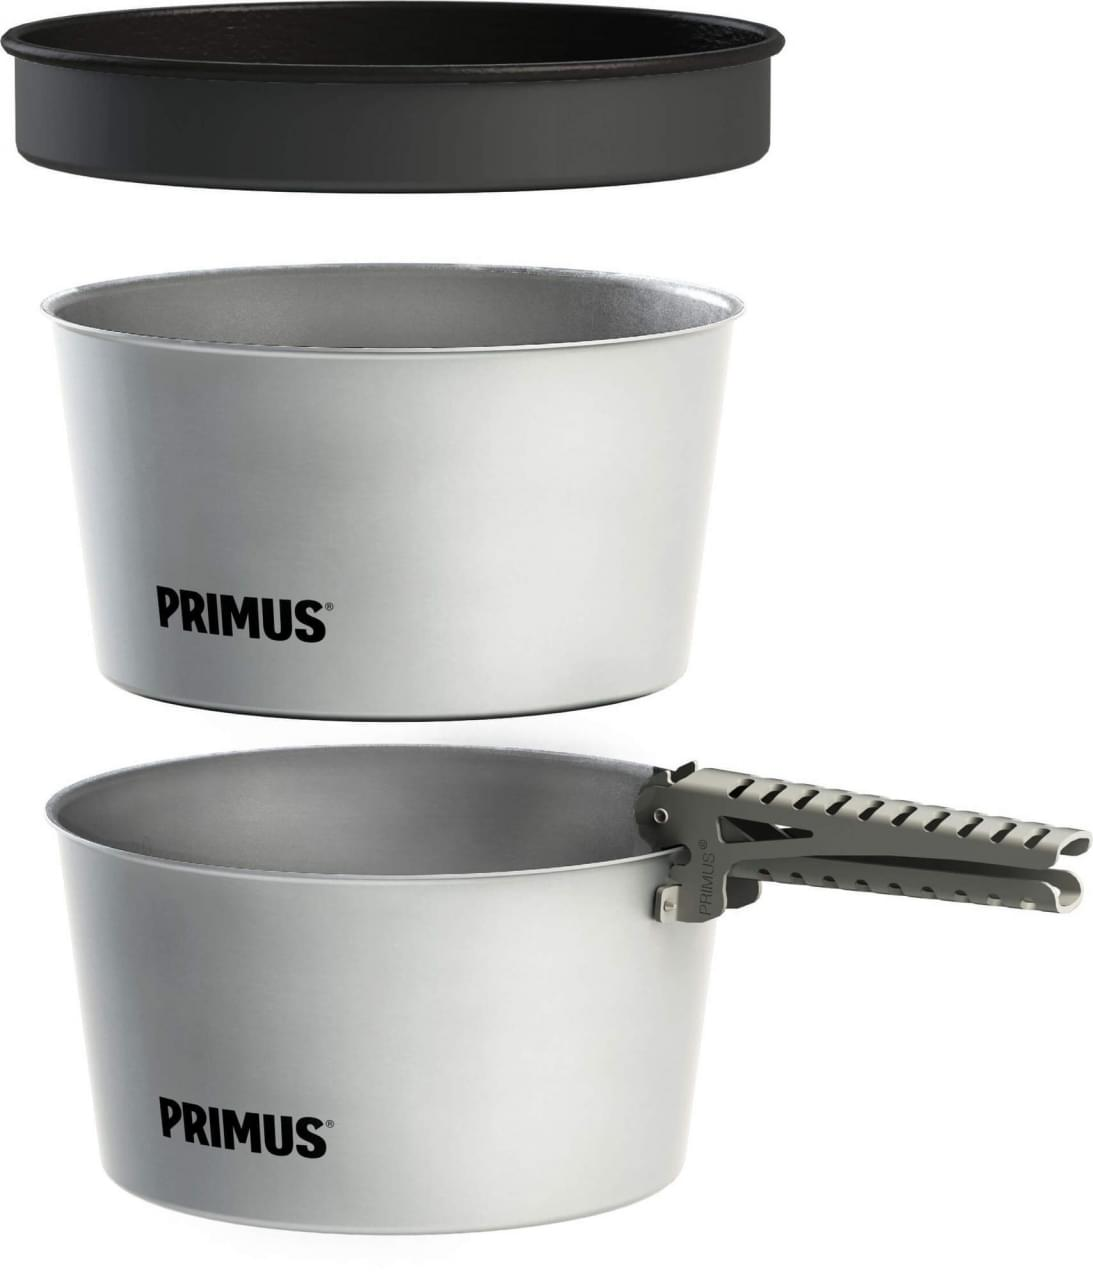 Primus Essential Pot Set 2.3L Pannenset